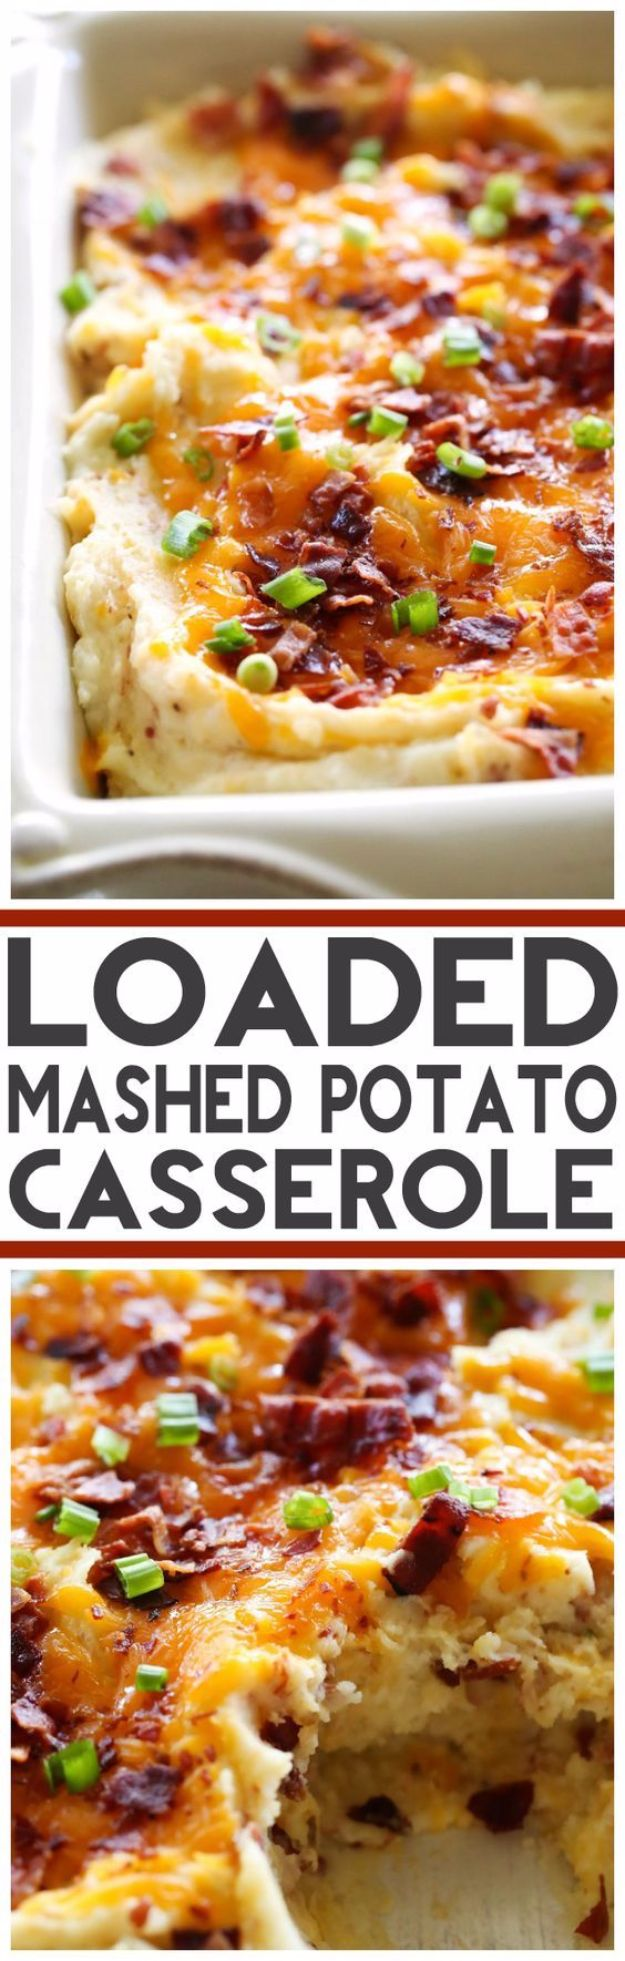 Best Easter Dinner Recipes - Loaded Mashed Potato Casserole - Easy Recipe Ideas for Easter Dinners and Holiday Meals for Families - Side Dishes, Slow Cooker Recipe Tutorials, Main Courses, Traditional Meat, Vegetable and Dessert Ideas - Desserts, Pies, Cakes, Ham and Beef, Lamb - DIY Projects and Crafts by DIY JOY